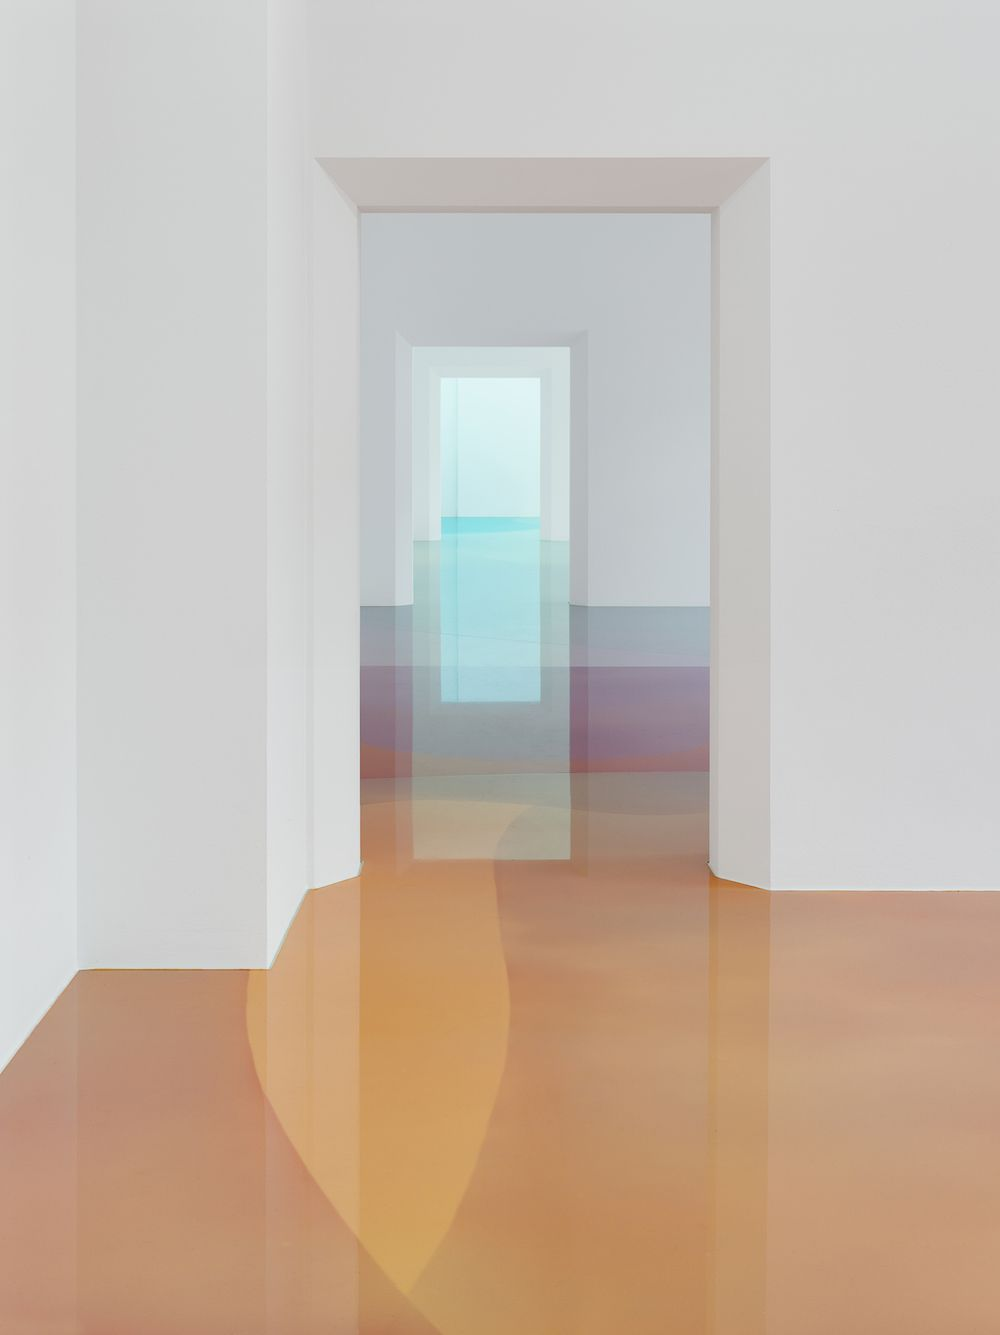 """culturenlifestyle: """" 1,400 Square Feet of Cotton Candy-Colored Resin Flood Inside German Museum Painter Peter Zimmermann has covered the Museum für Neue Kunst in Freiburg, Germany with cotton candy..."""